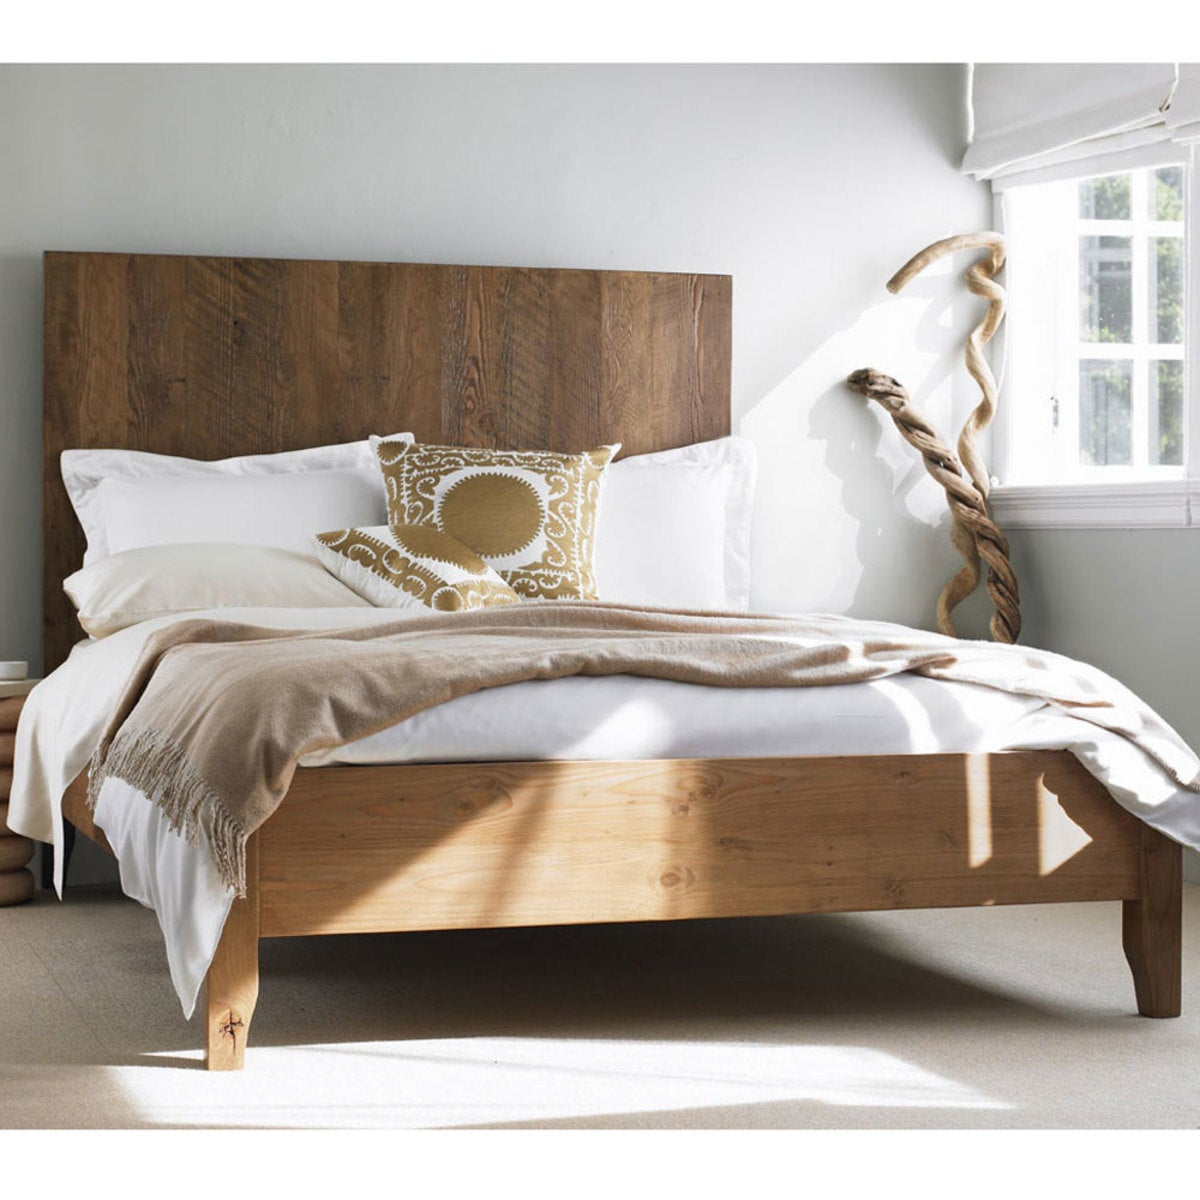 Vintage Fir Plank Twin Bed - Dark Finish with White Glove Delivery - Dark Finish